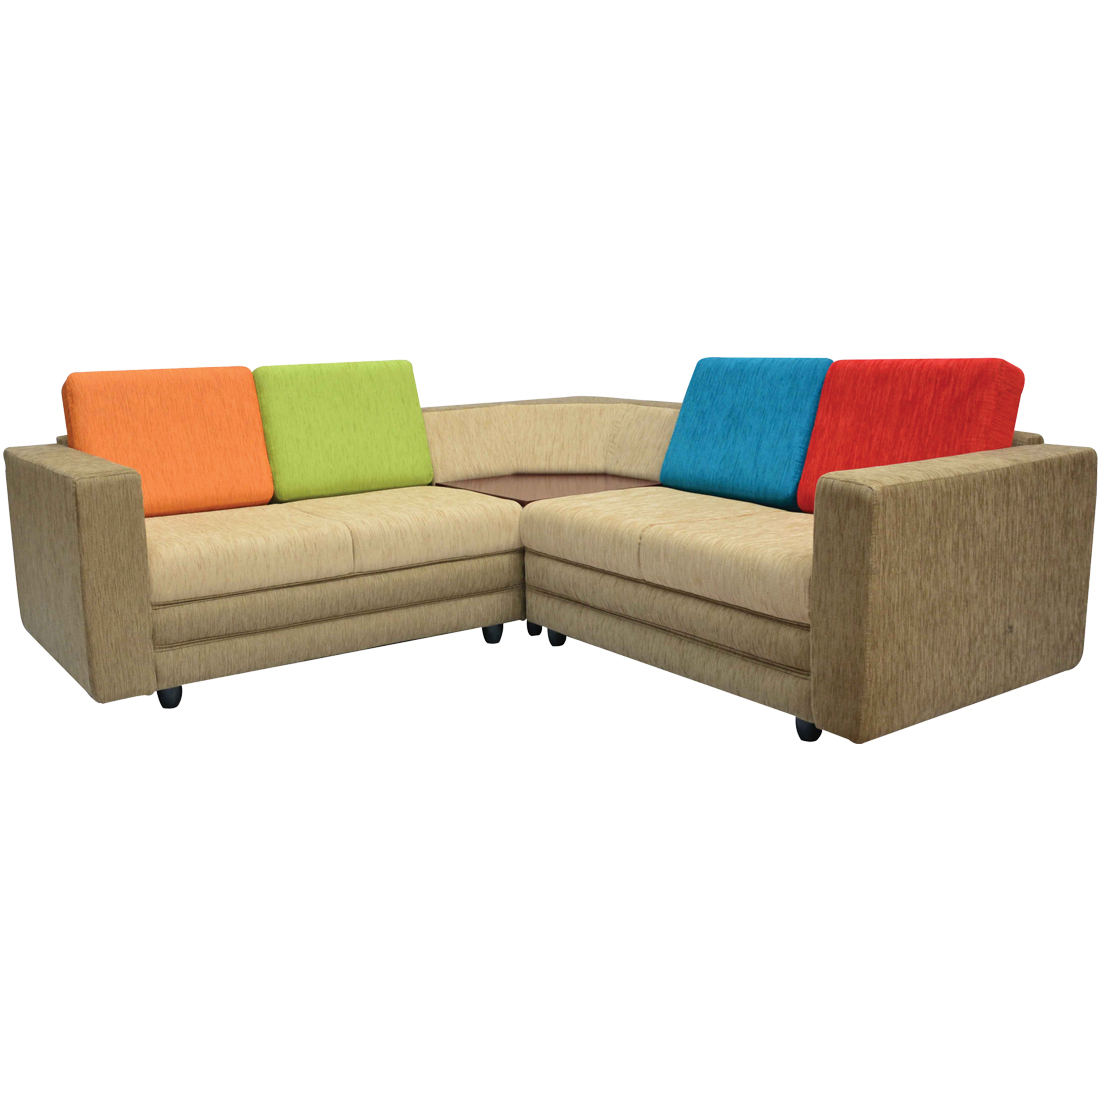 legend sectional sofa brown base and red blue orange and green back cushions